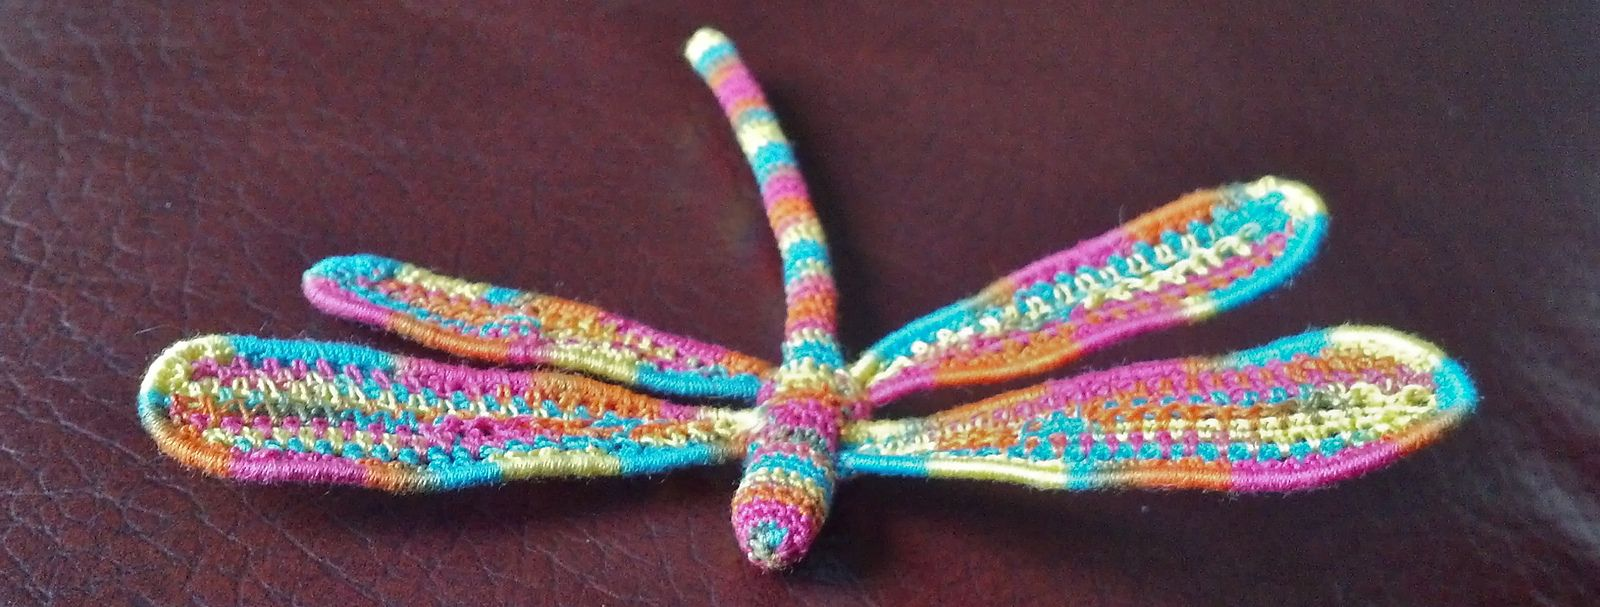 Dragonfly Crochet Pattern Cool Decoration